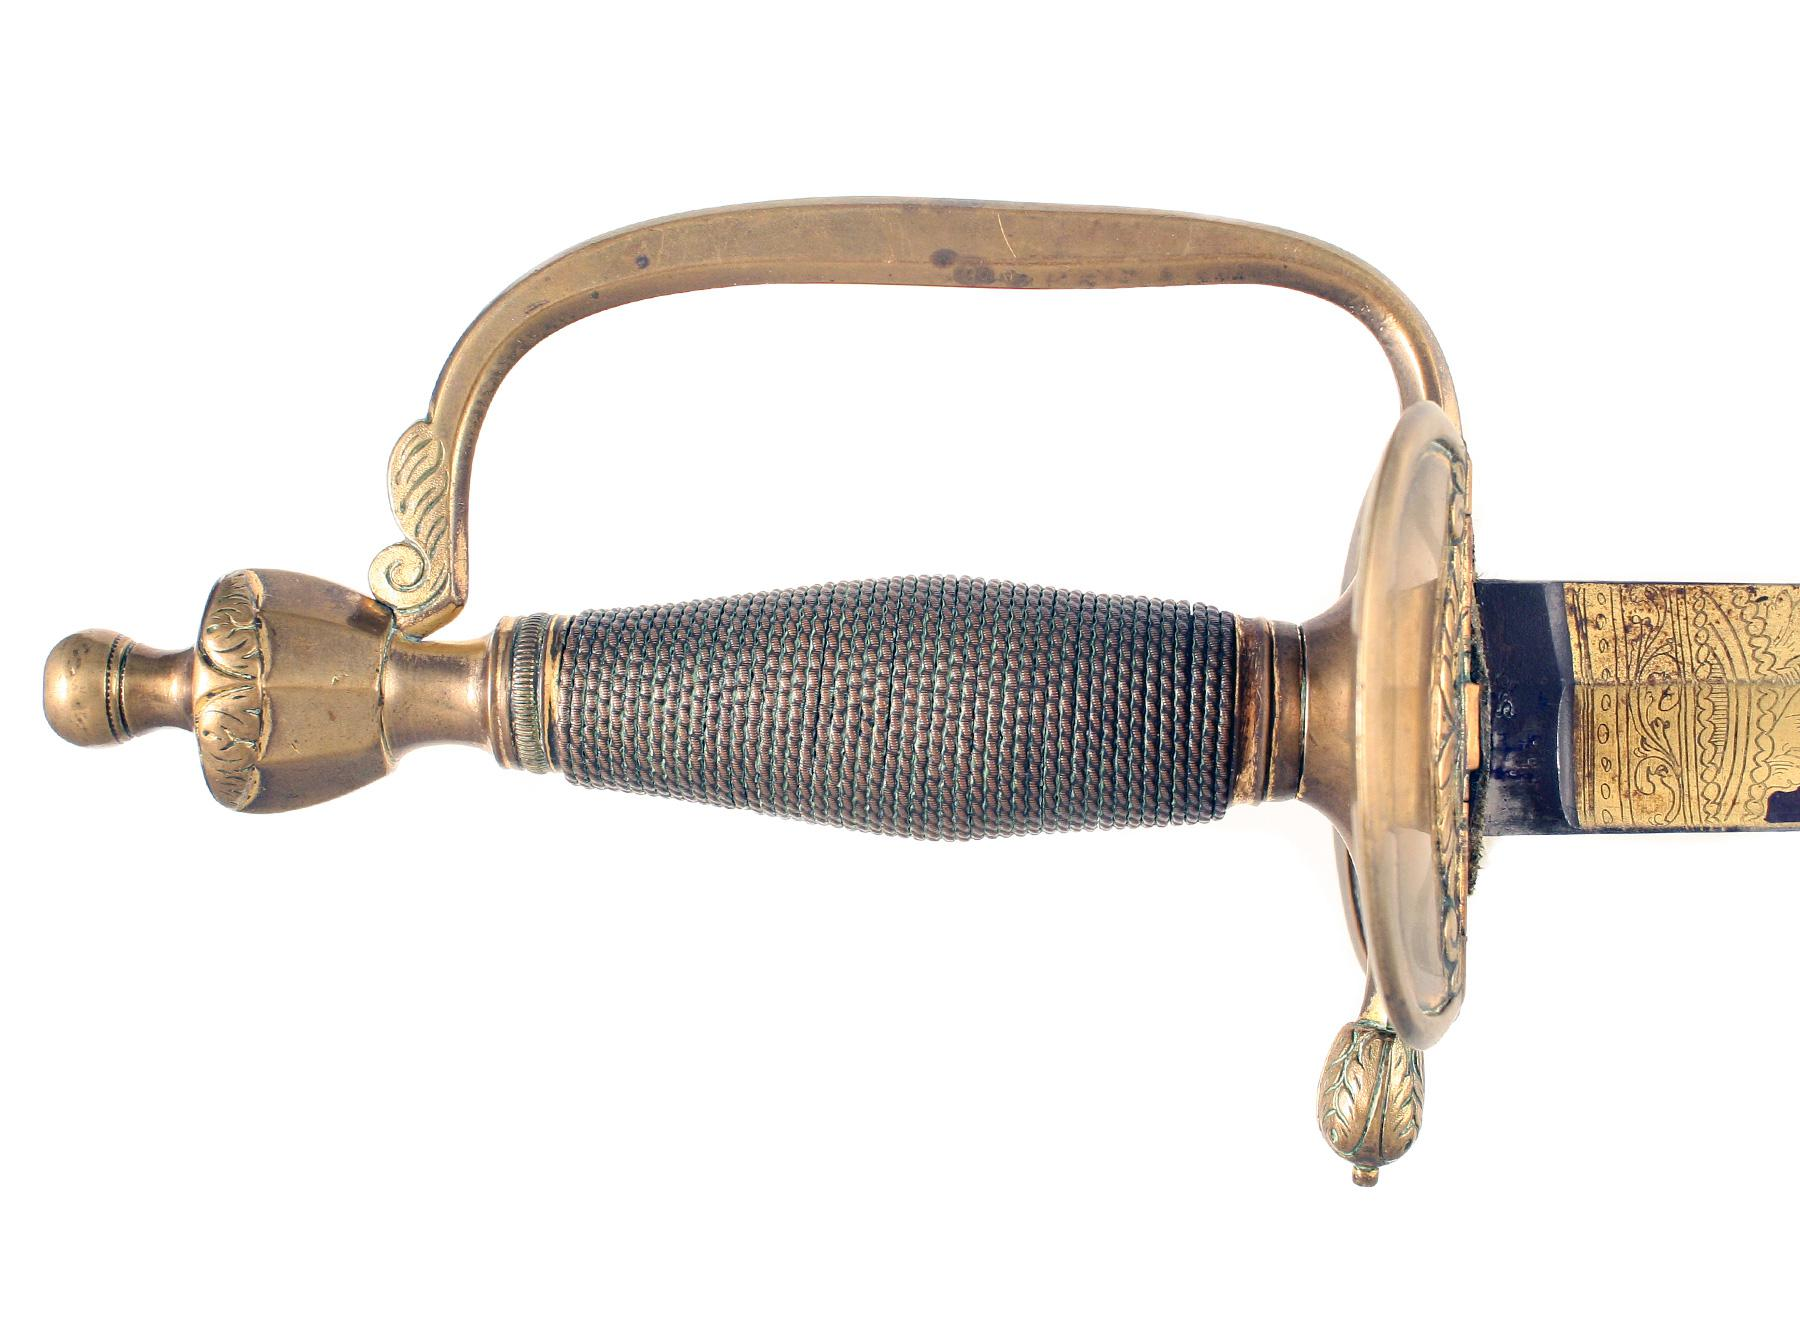 An Outstanding 1796 Infantry Officers Sword